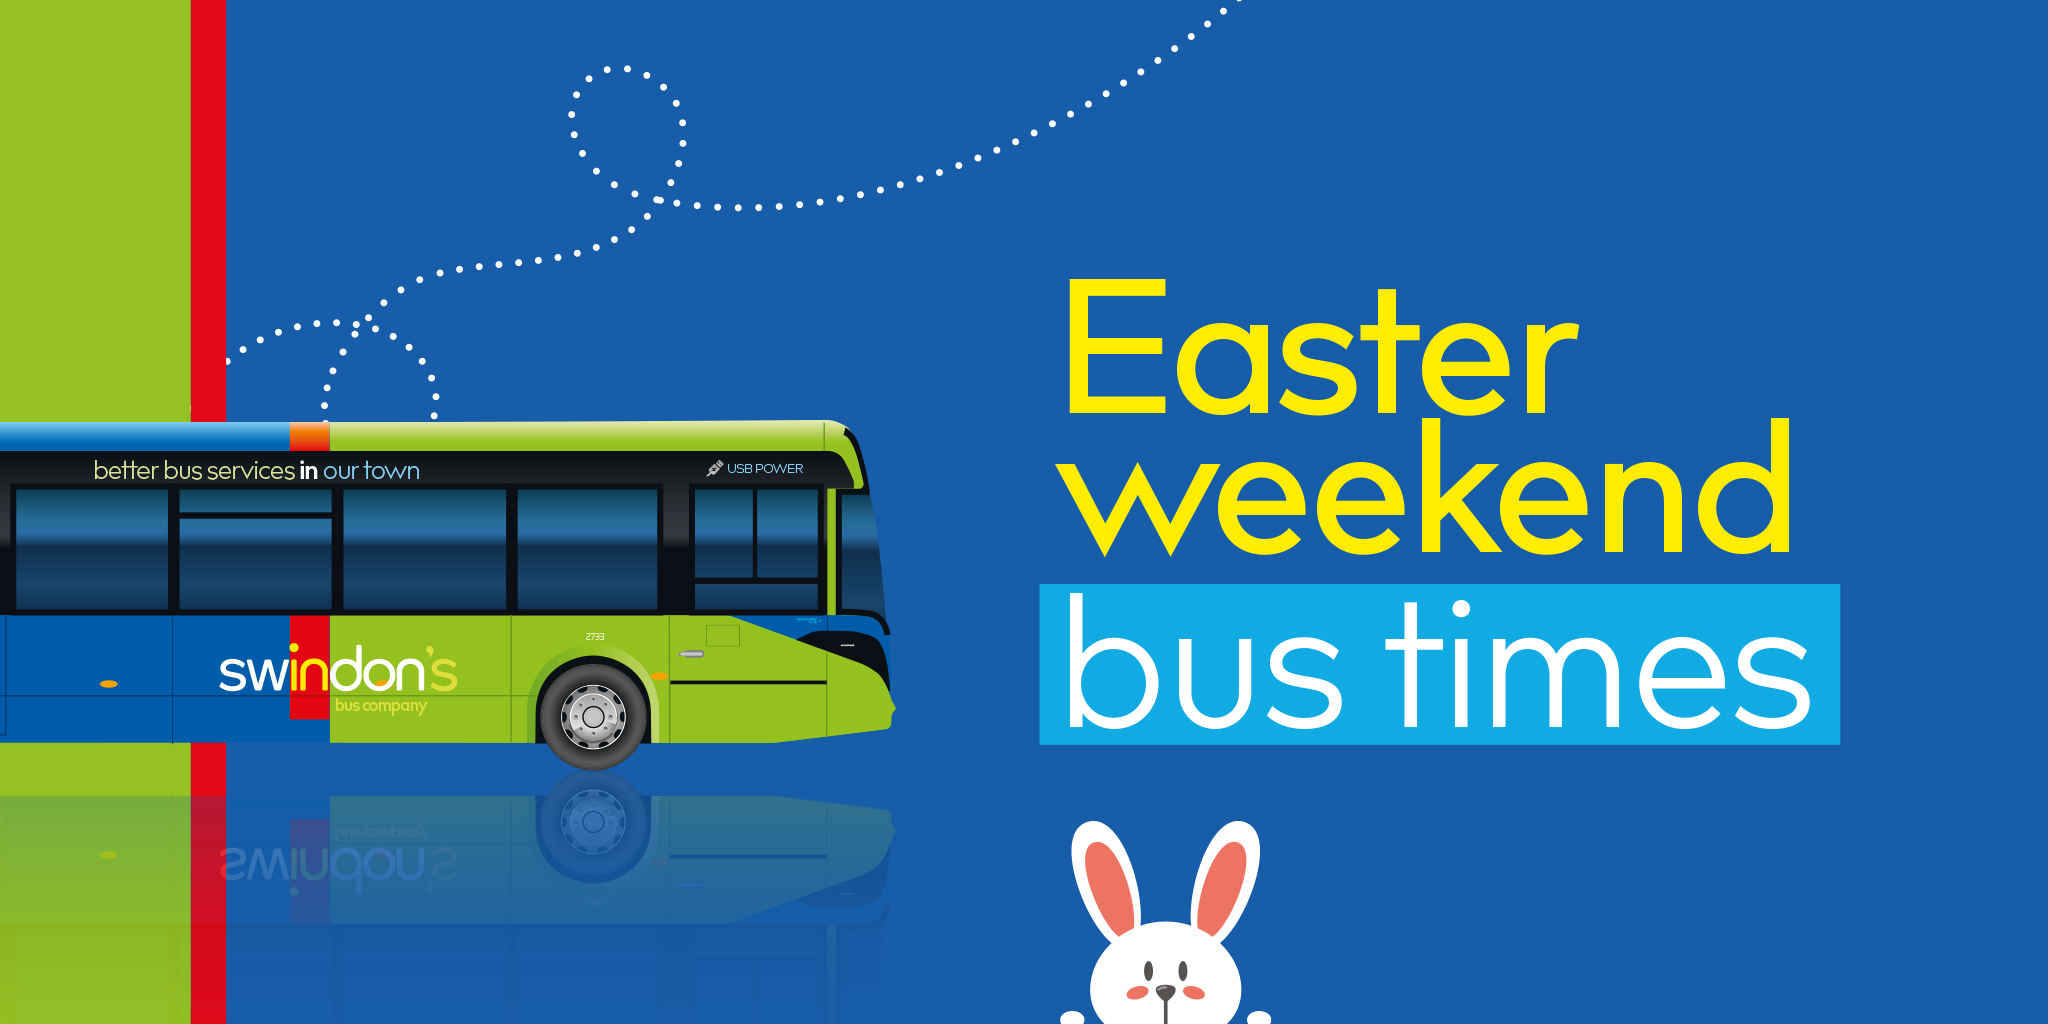 Image reading 'Easter weekend bus times'